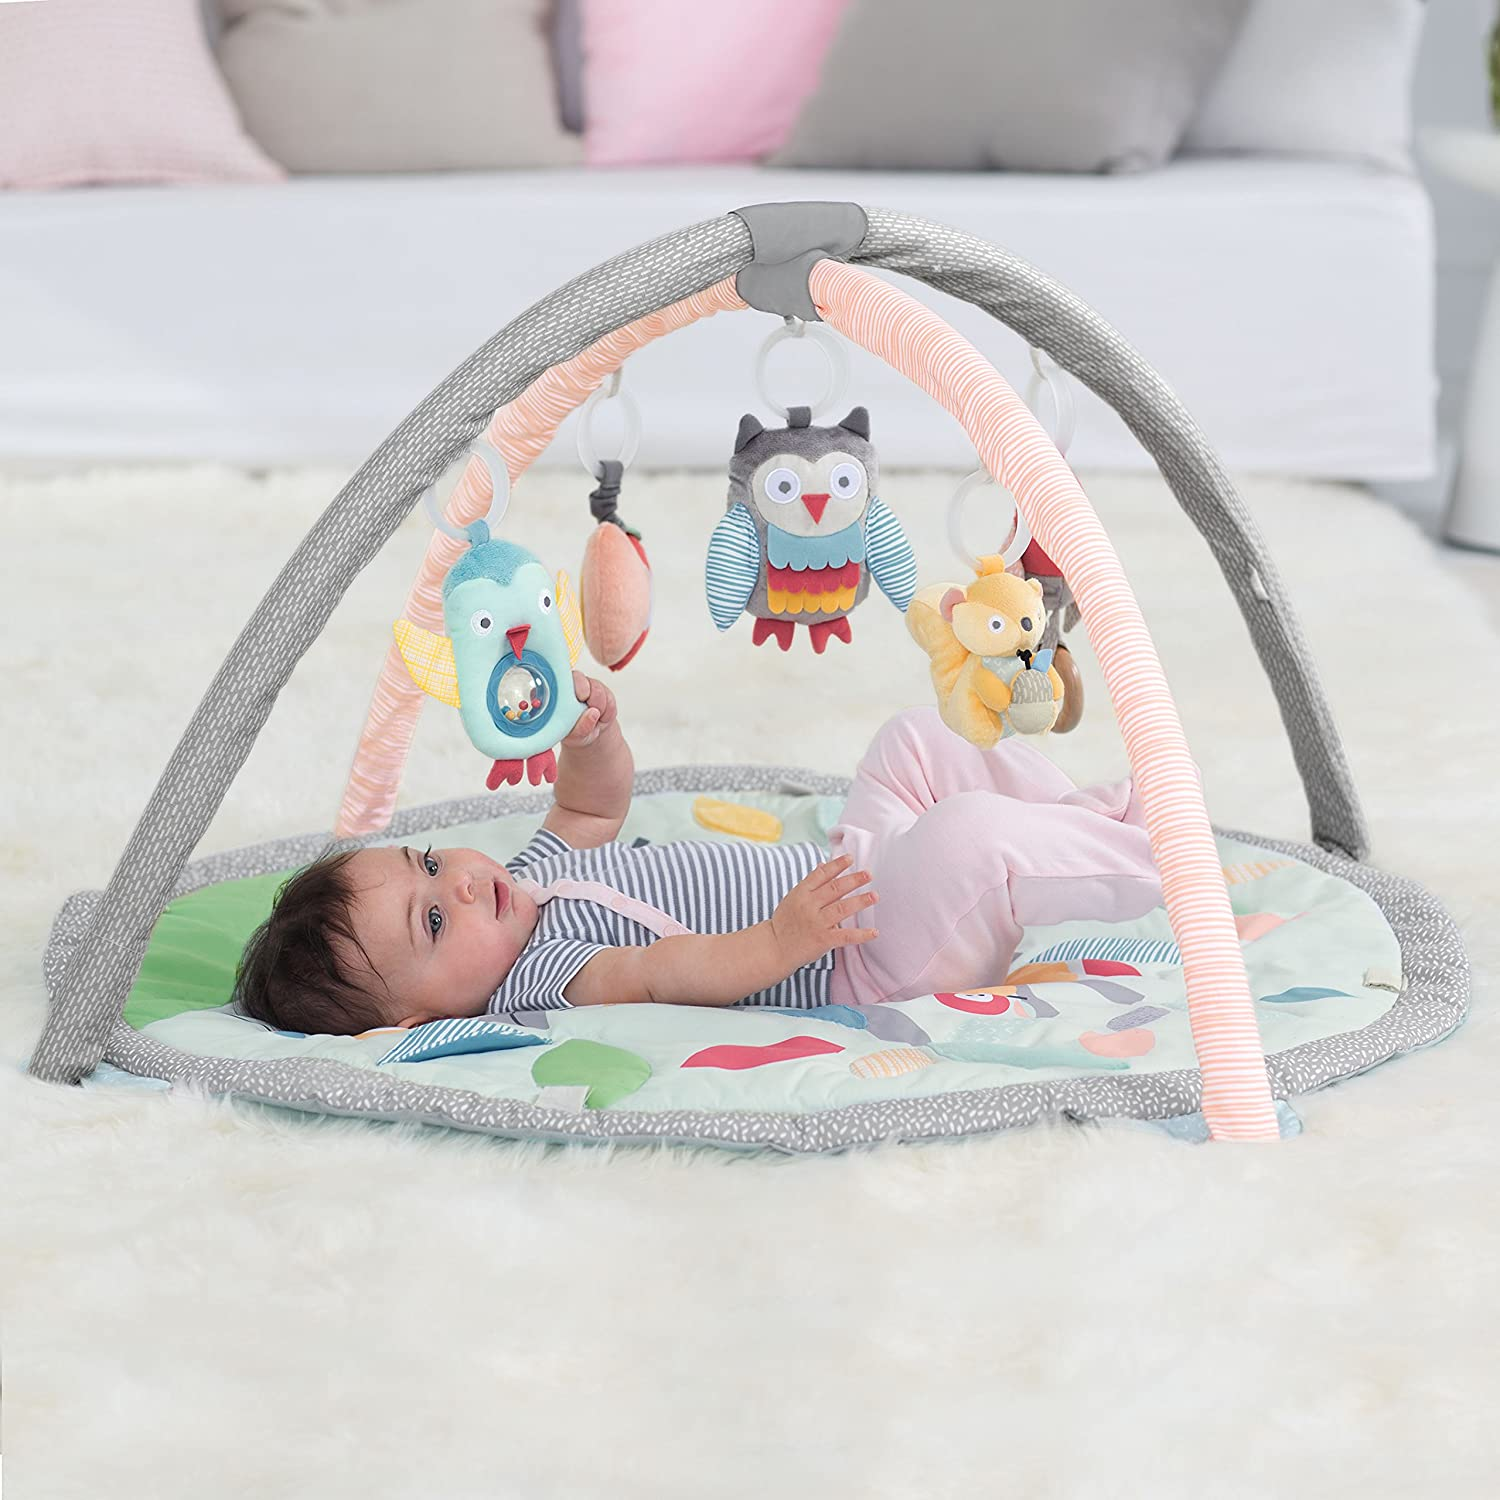 Skip Hop Baby Treetop Friends Activity Gym Playmat, Grey Pastel